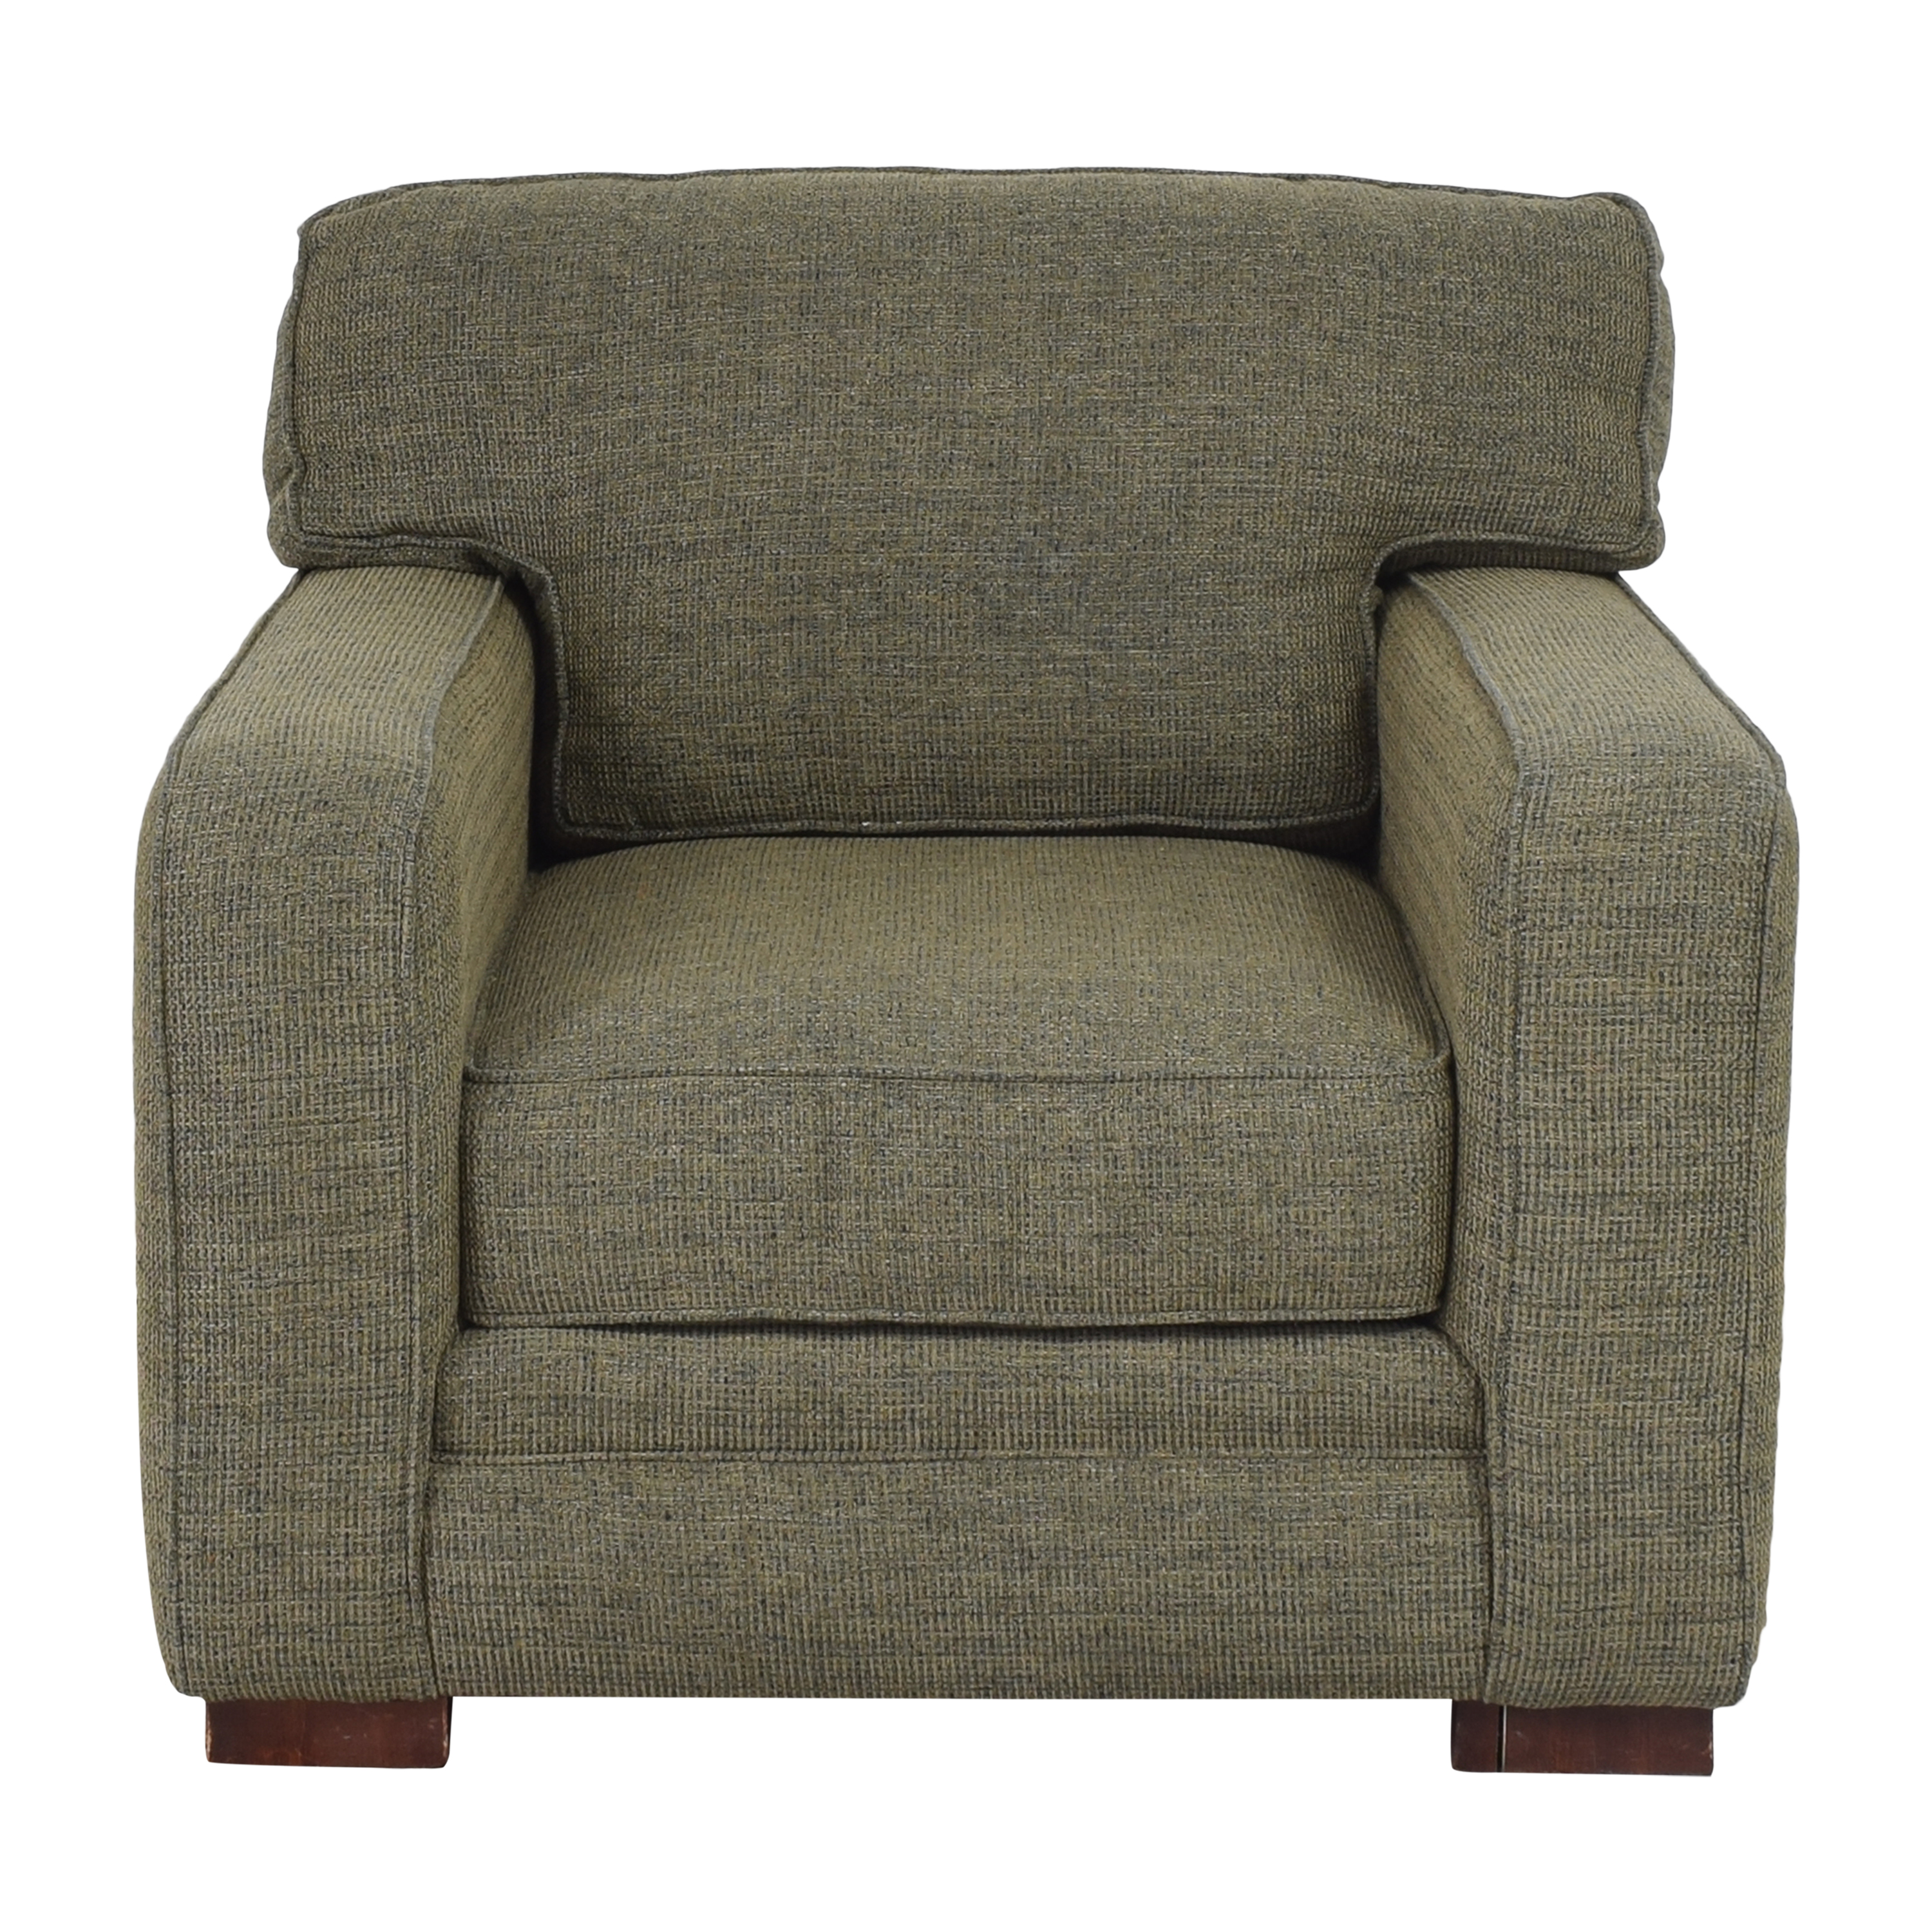 Broyhill Furniture Broyhill Furniture Oversized Club Chair on sale